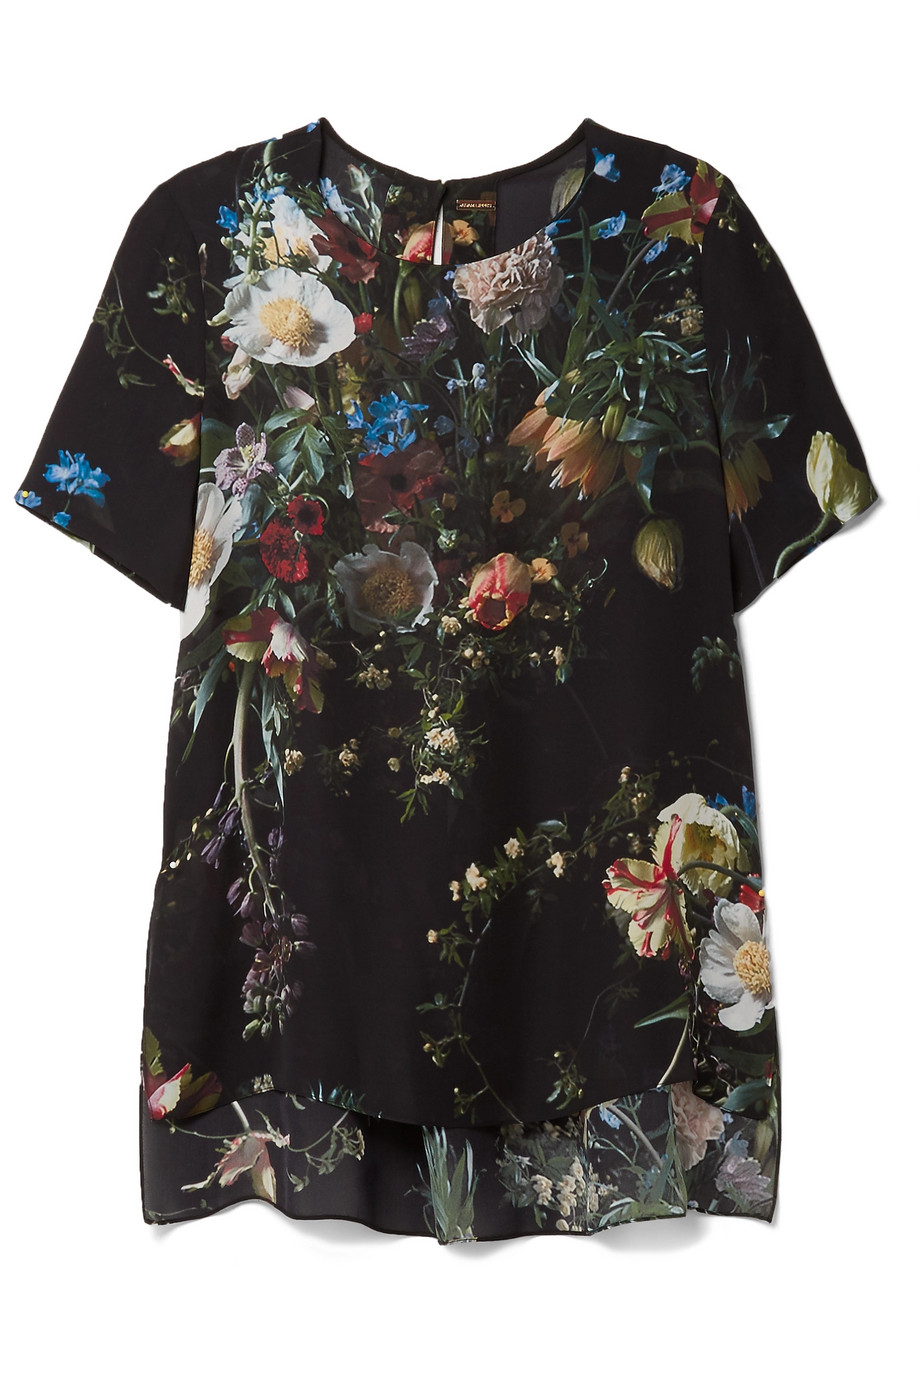 Silk blouse Adam Lippes buy Silk blouse Adam Lippes internet shop